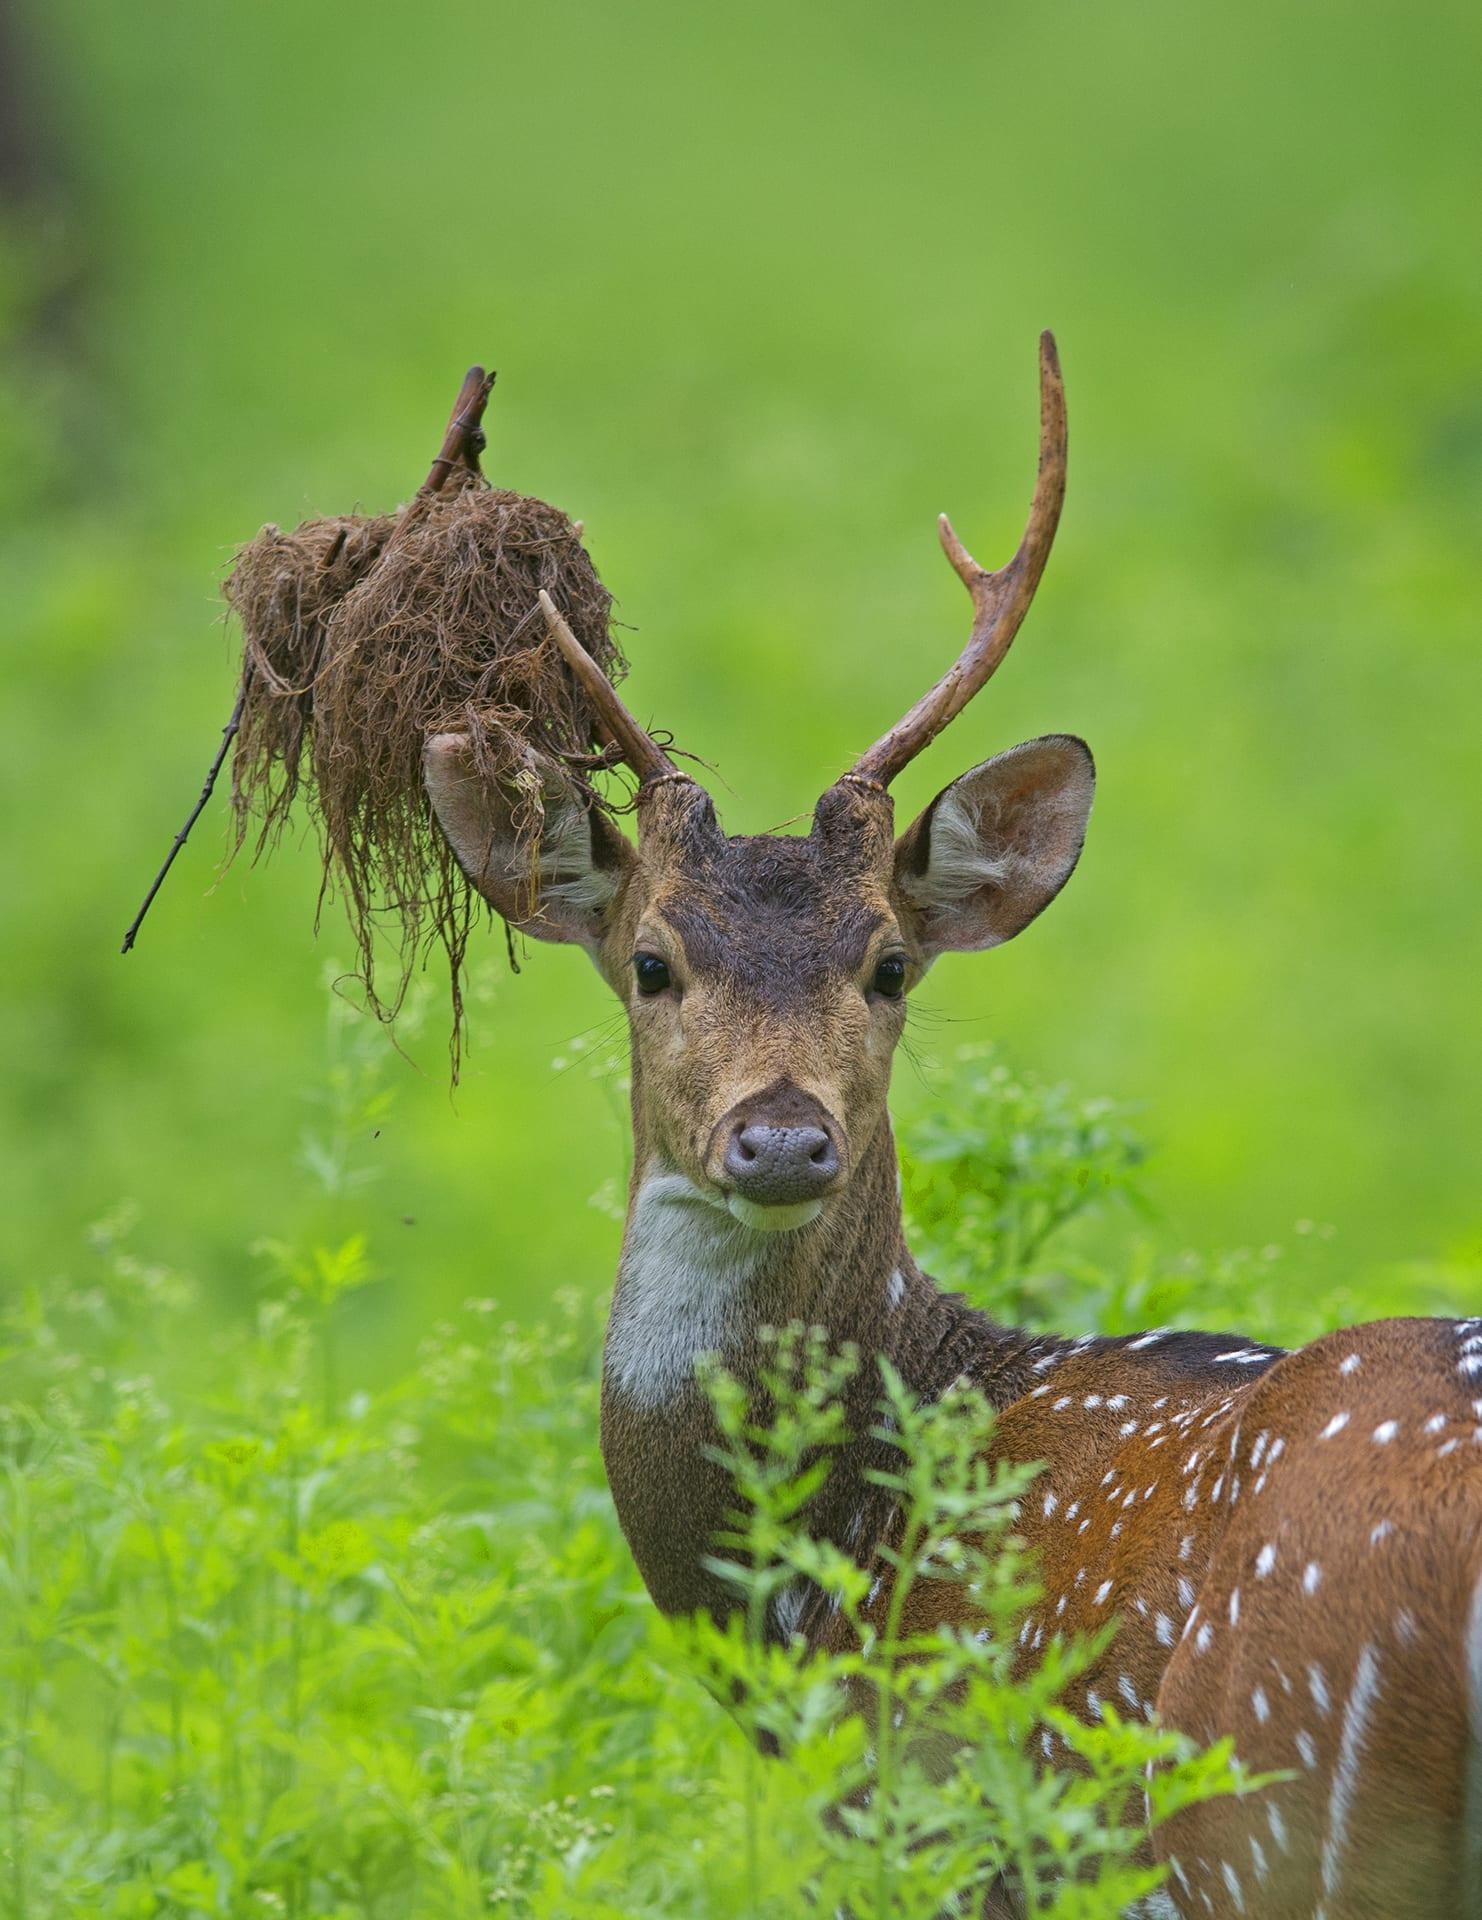 The spotted deer is one of the park's most common residents with large herds seen trotting across the park. The male typically has branching, three-tined antlers that can grow up to one metre in length.